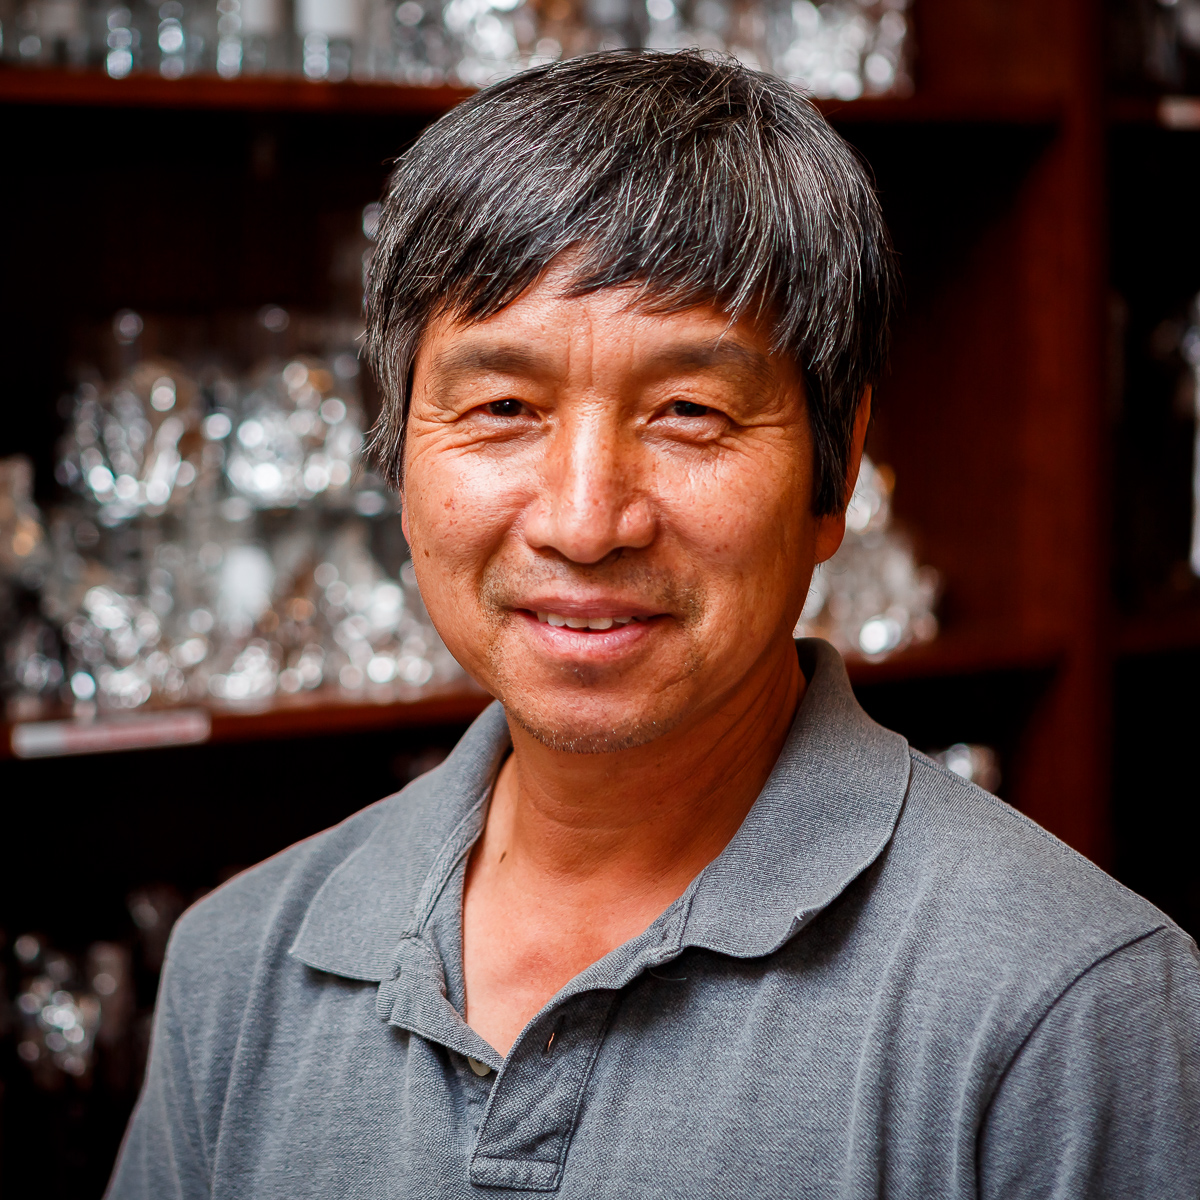 Dr. Renjie Song